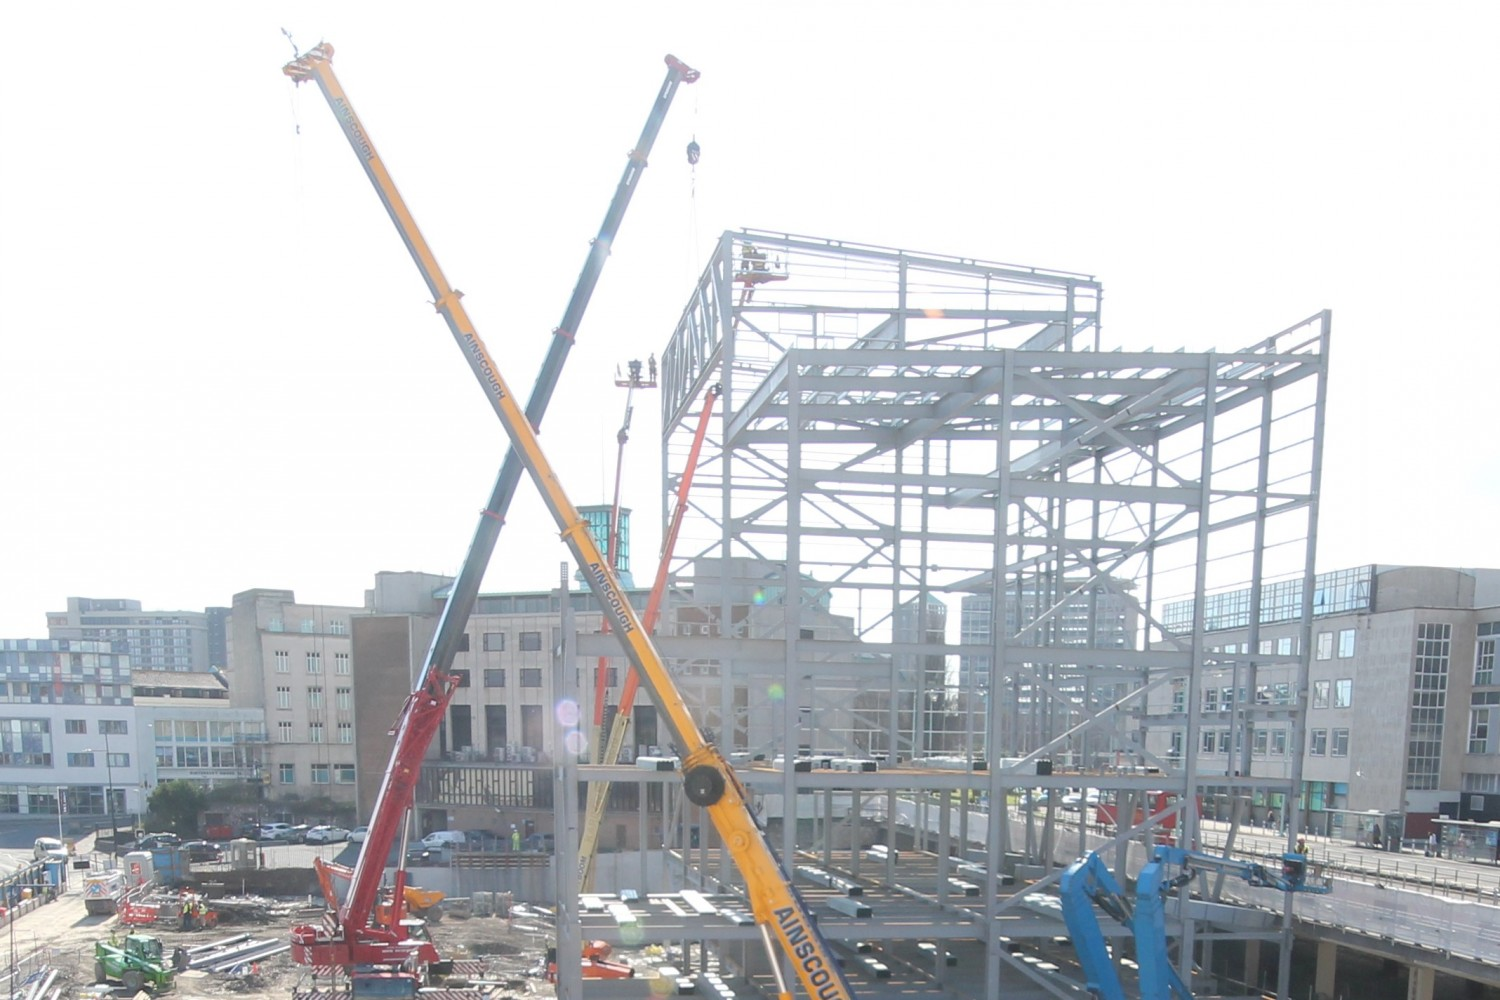 Drake Circus, Plymouth, Construction Site, Truss, British Land, regeneration